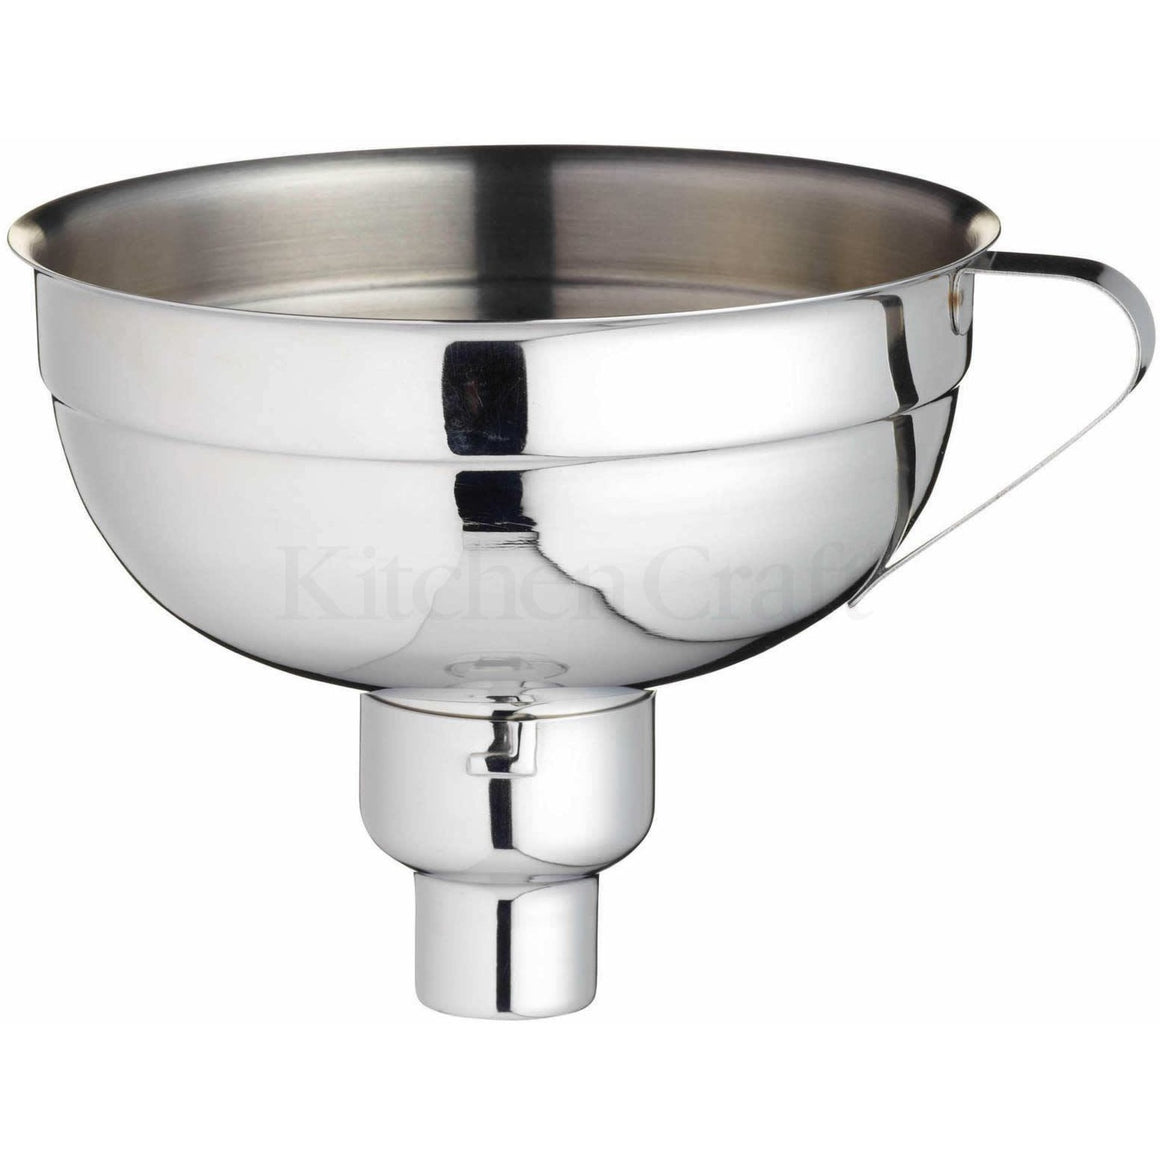 KitchenCraft Adjust Jam Funnel